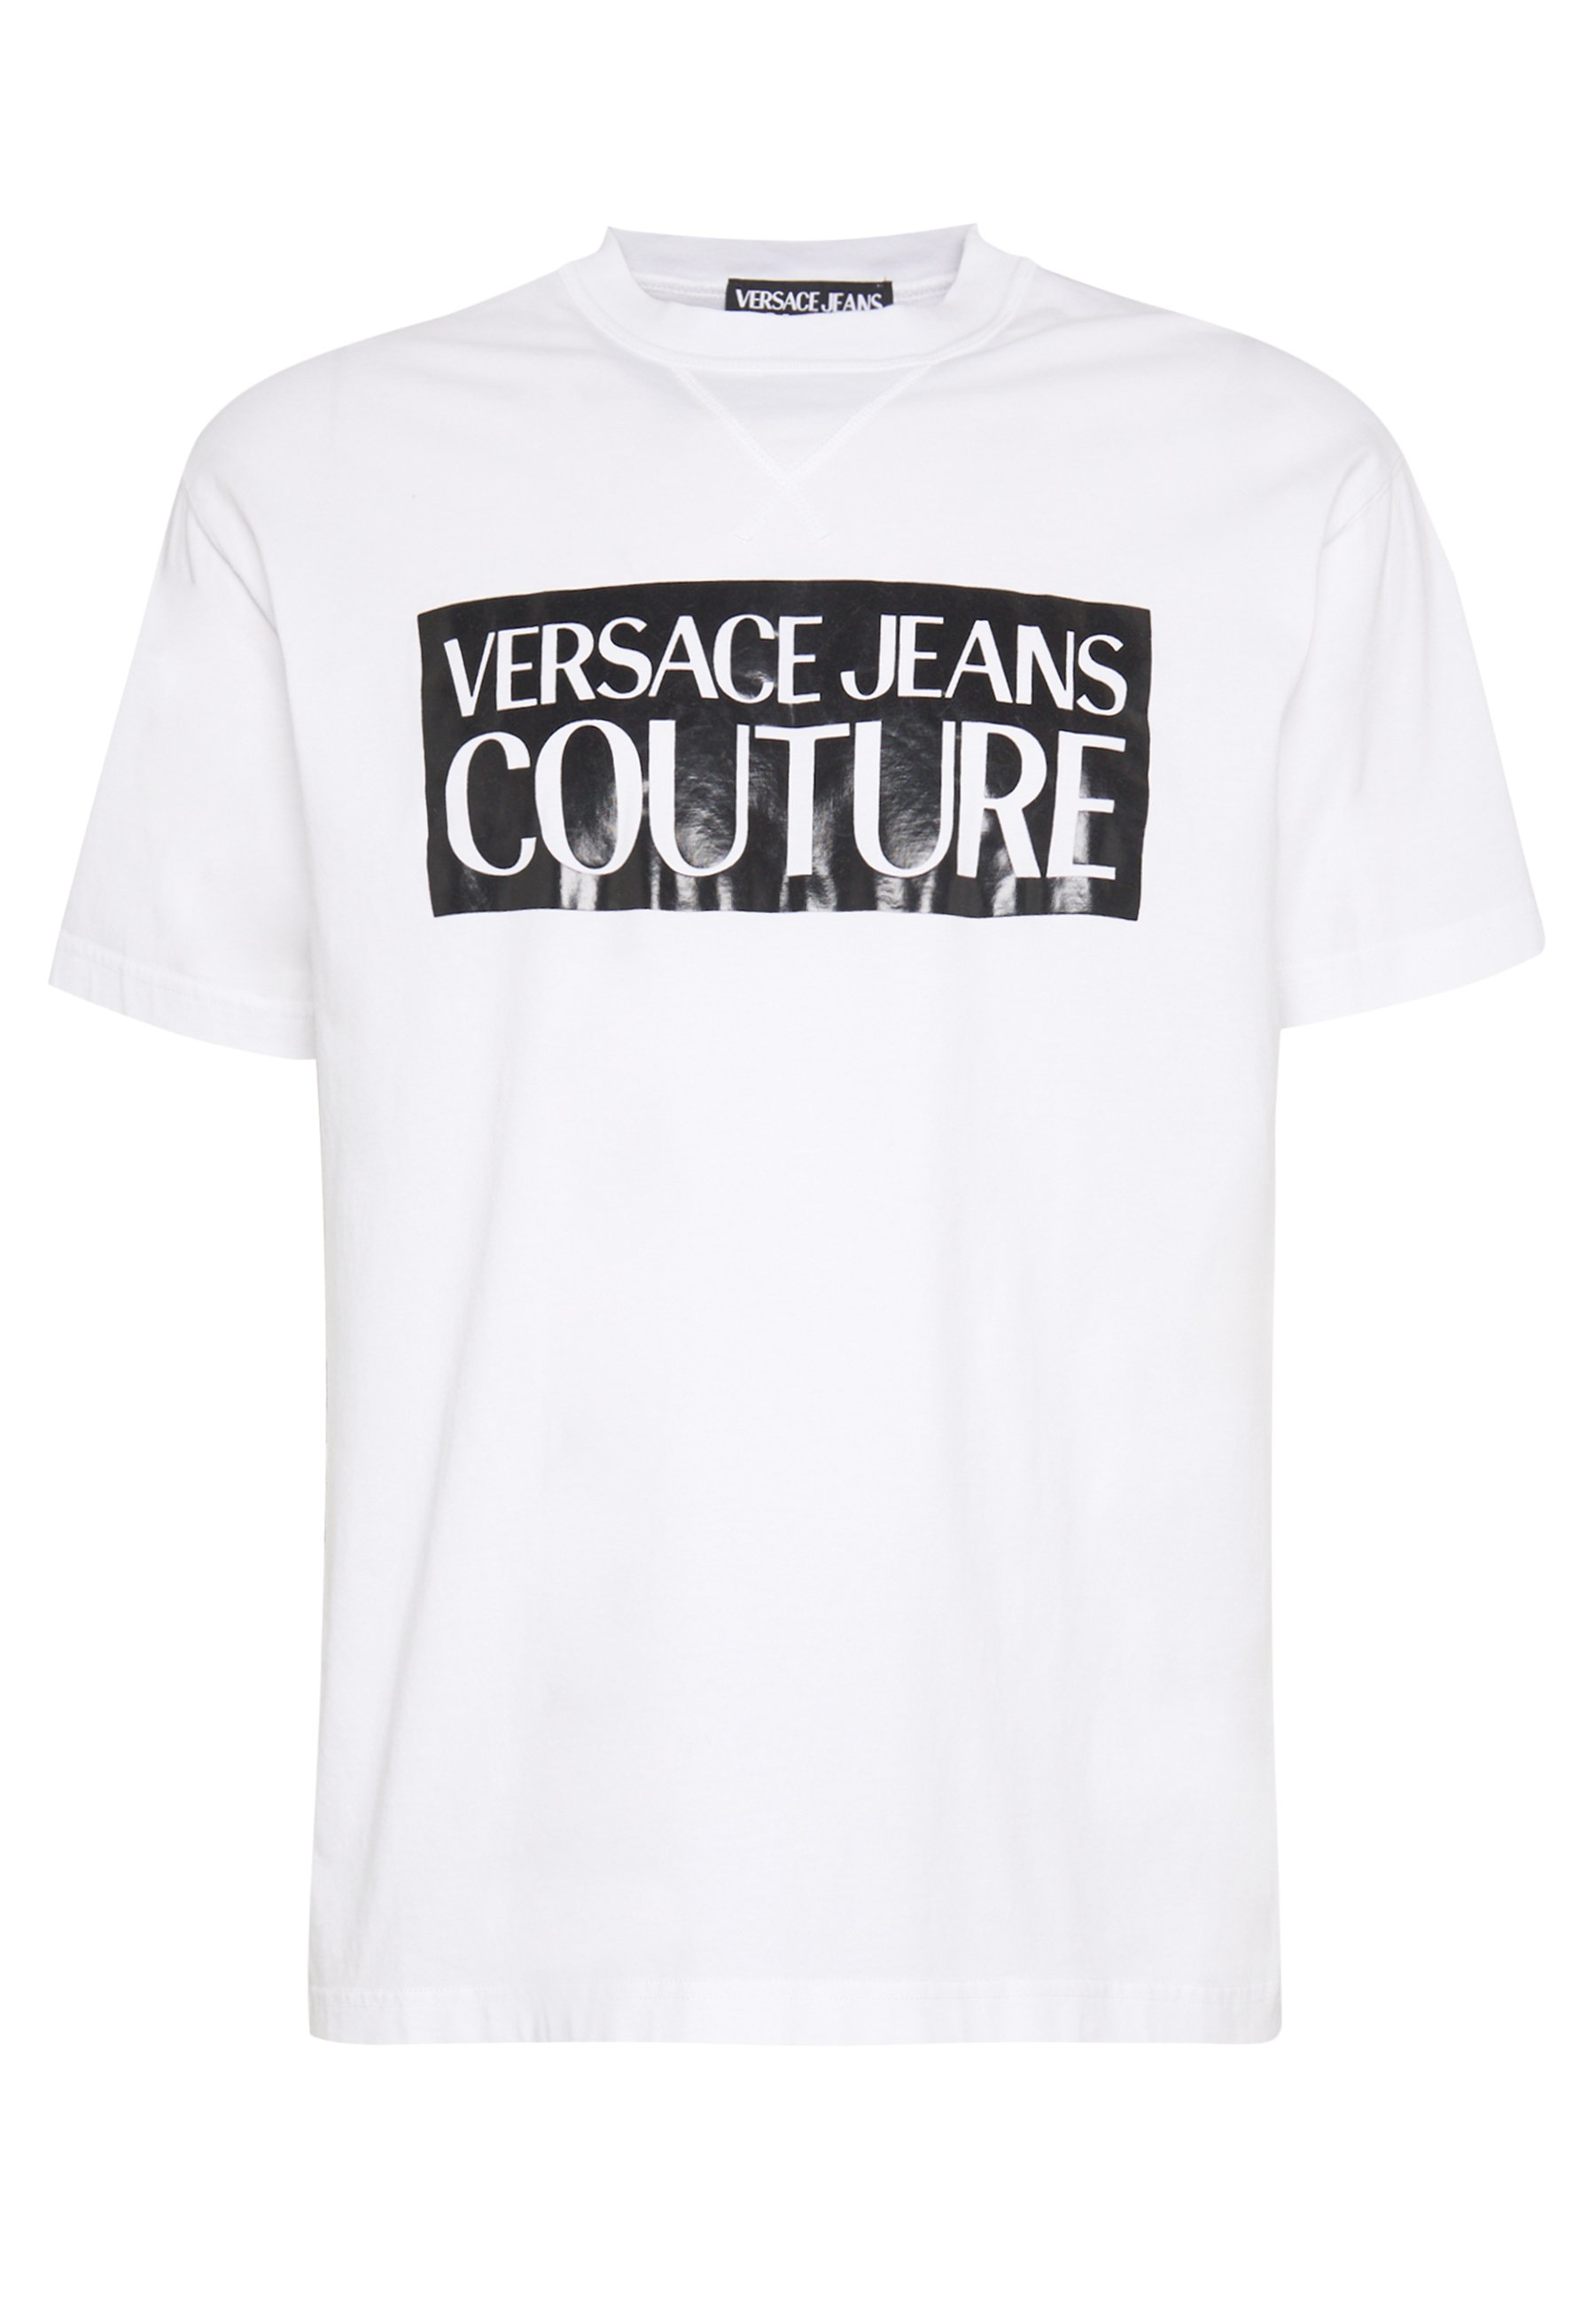 Versace Jeans Couture Basic Logo Regular Fit - T-shirt Med Print White / Black